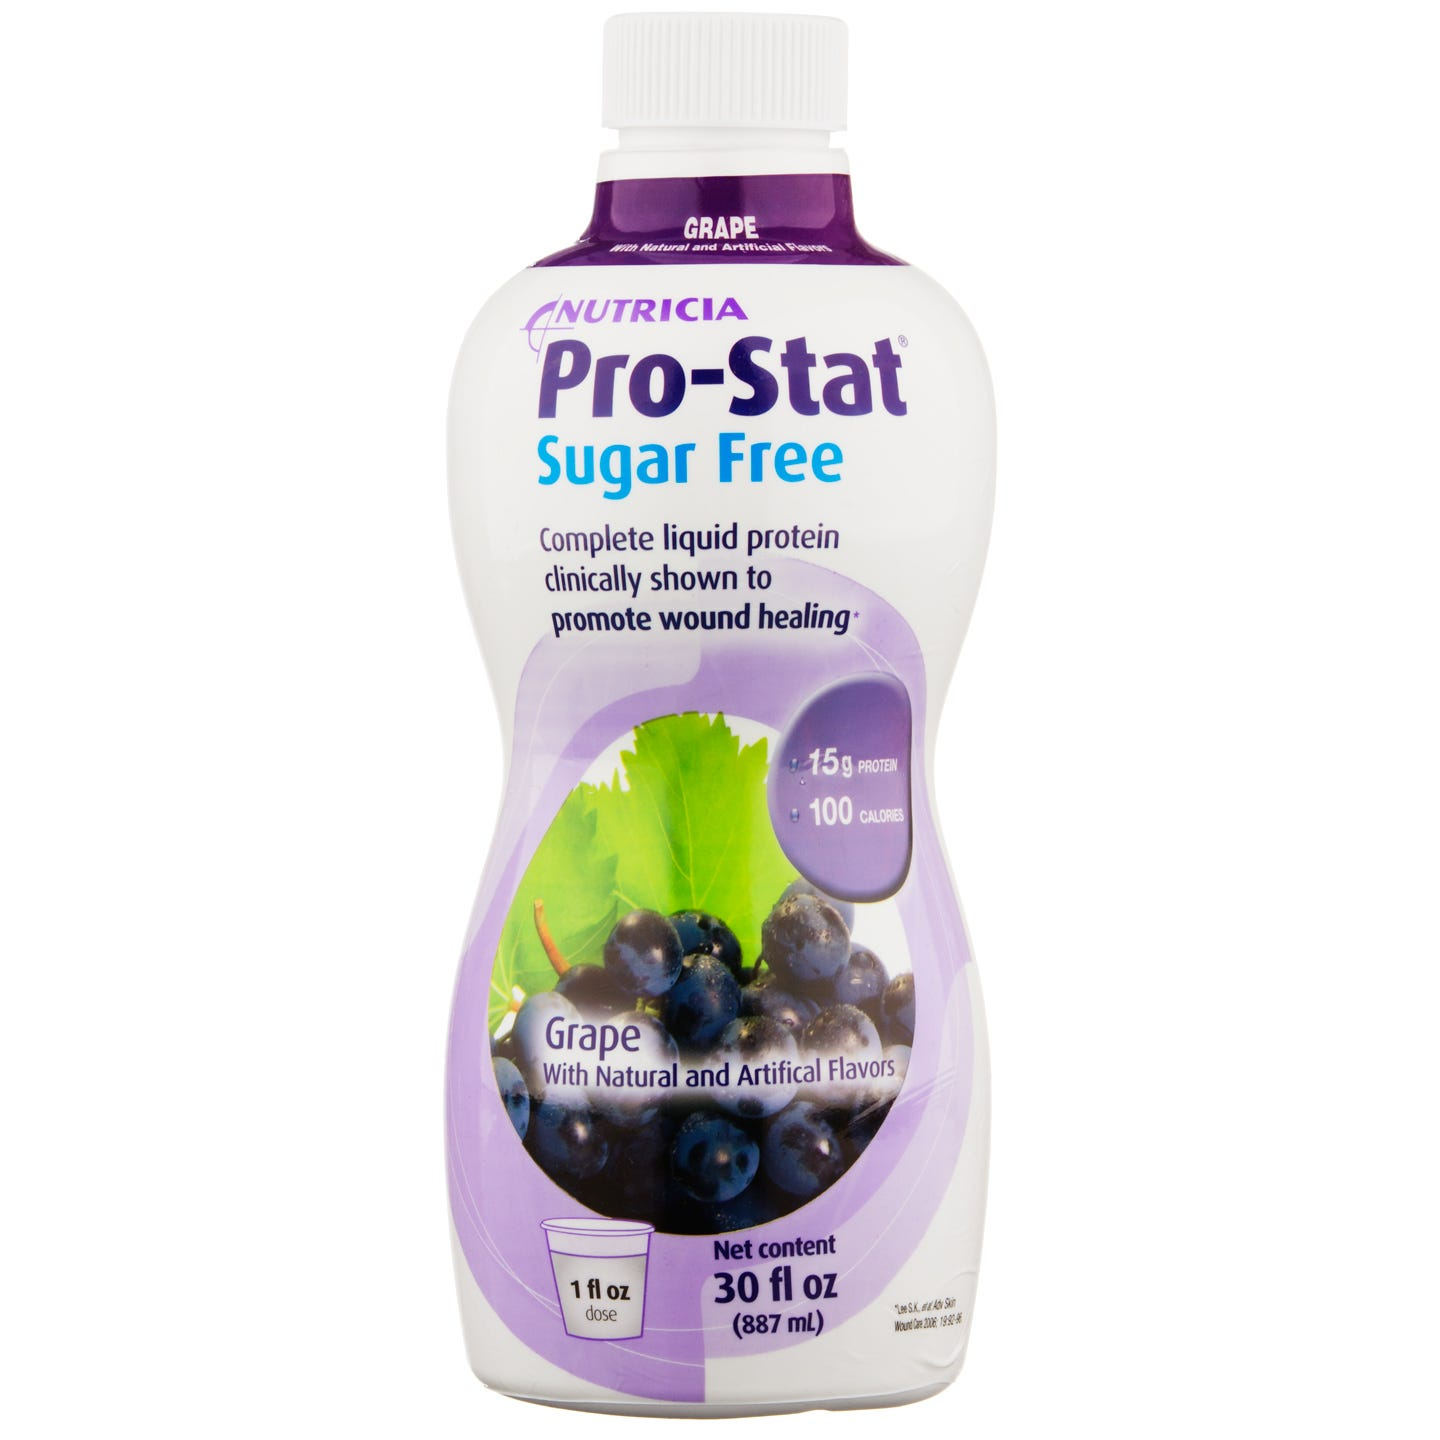 Pro-Stat Sugar Free Liquid Protein Grape Flavor 30 fl oz - Rapid Diet Weight Loss Products Shop